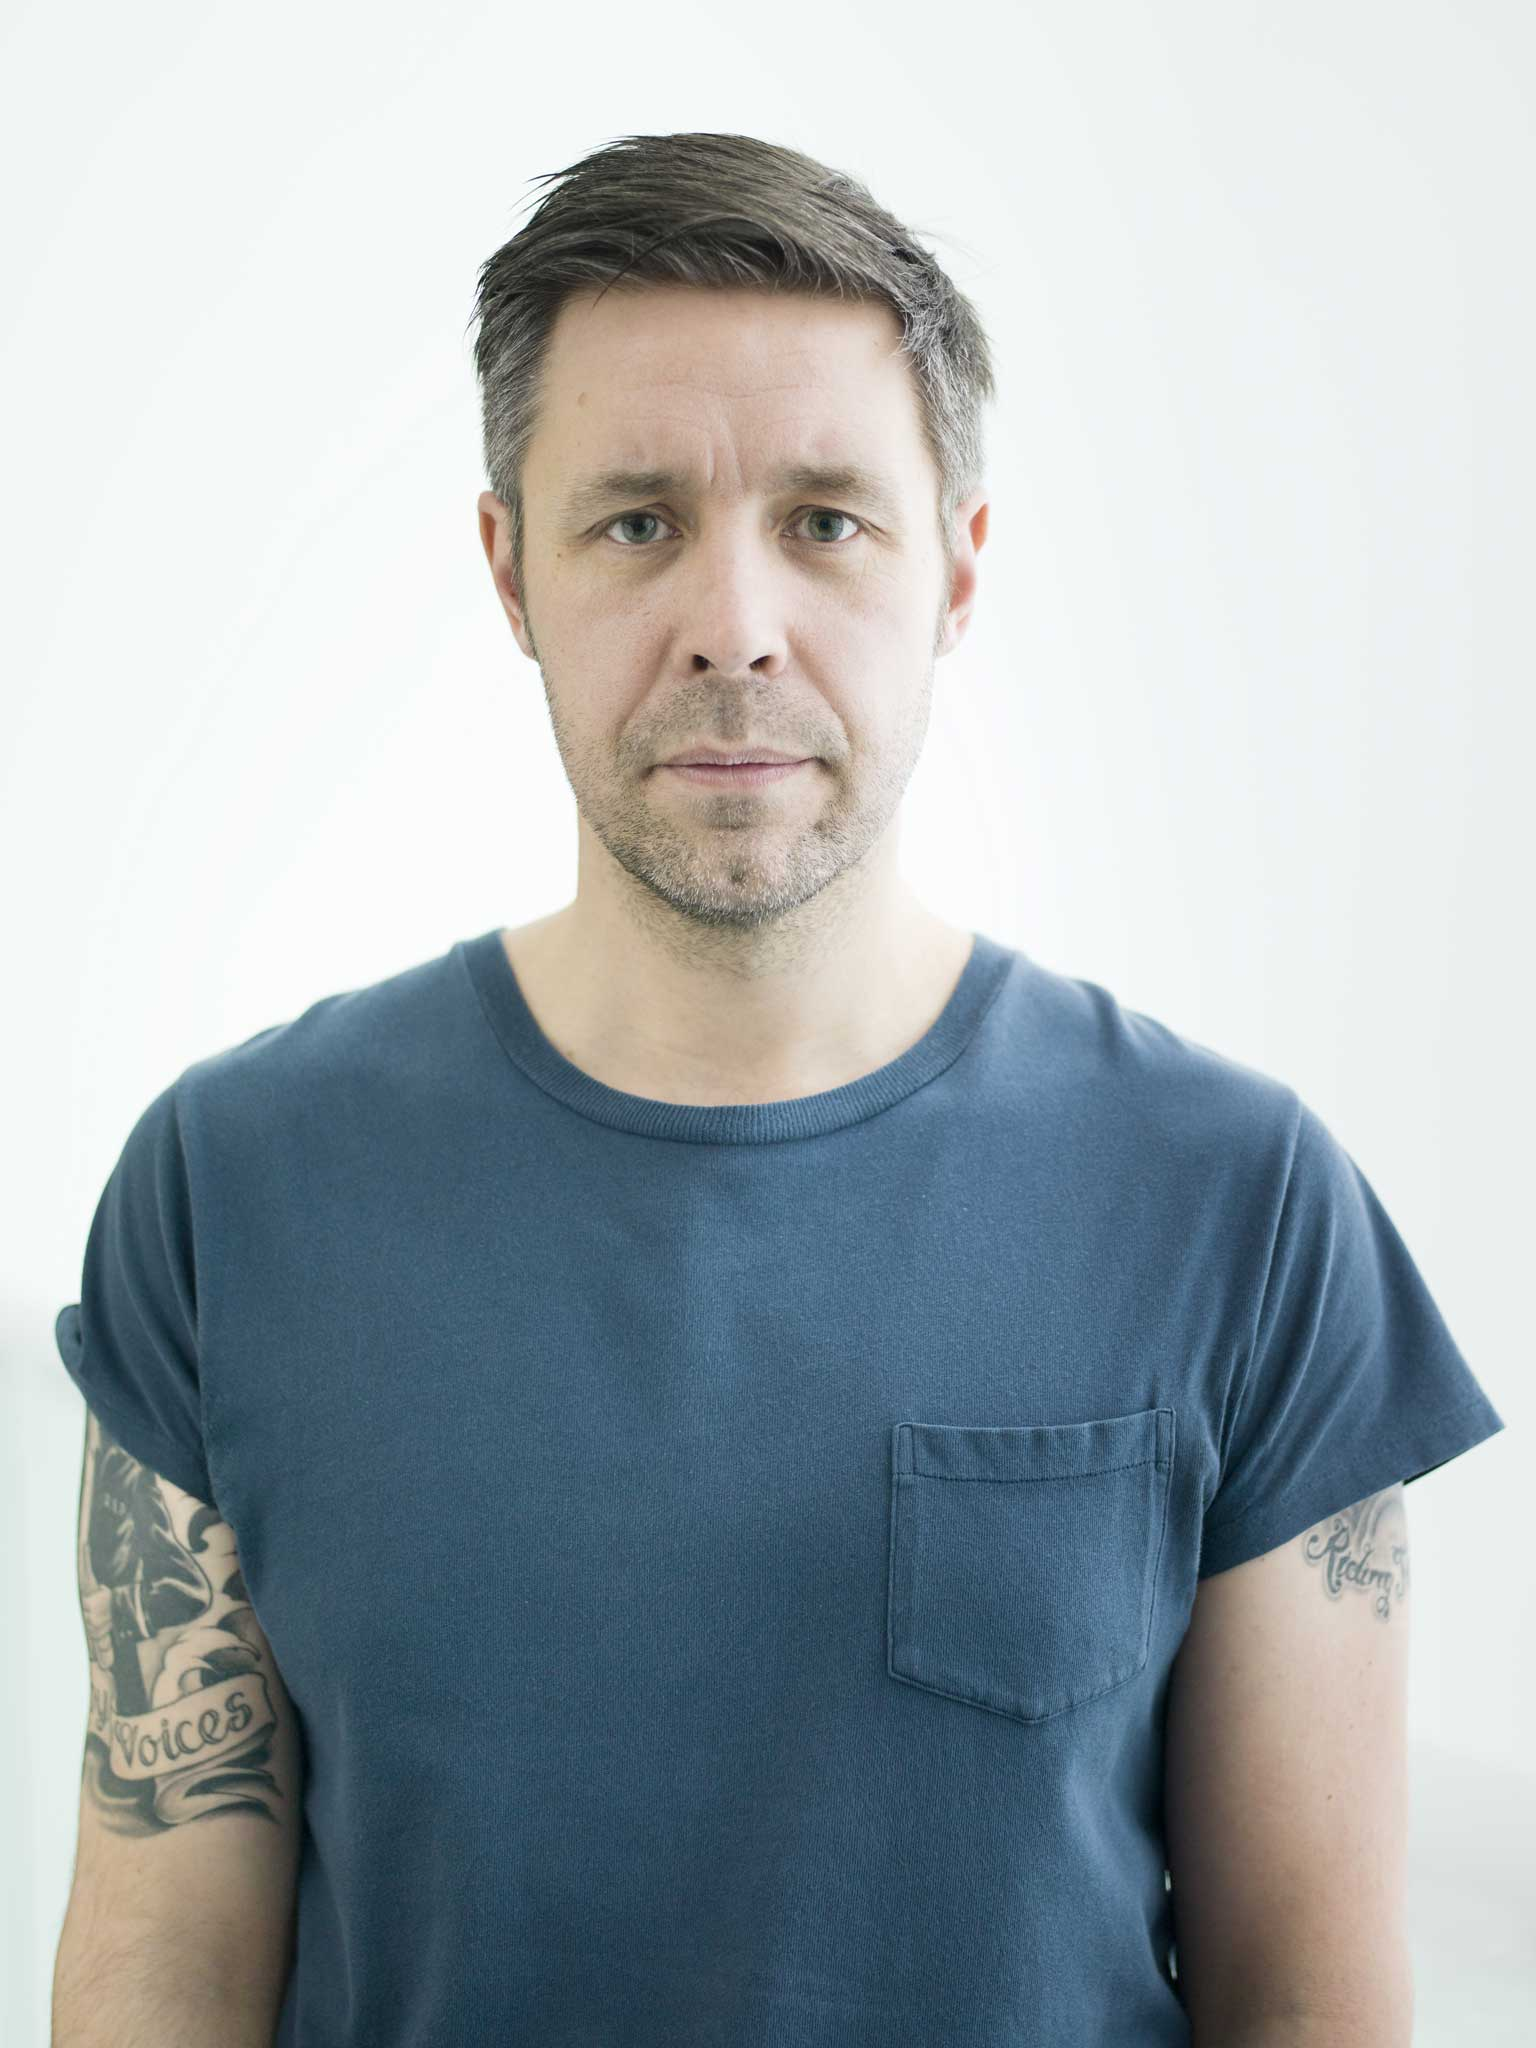 Light relief: How the volatile actor Paddy Considine came to terms with an  unusual ailment | The Independent